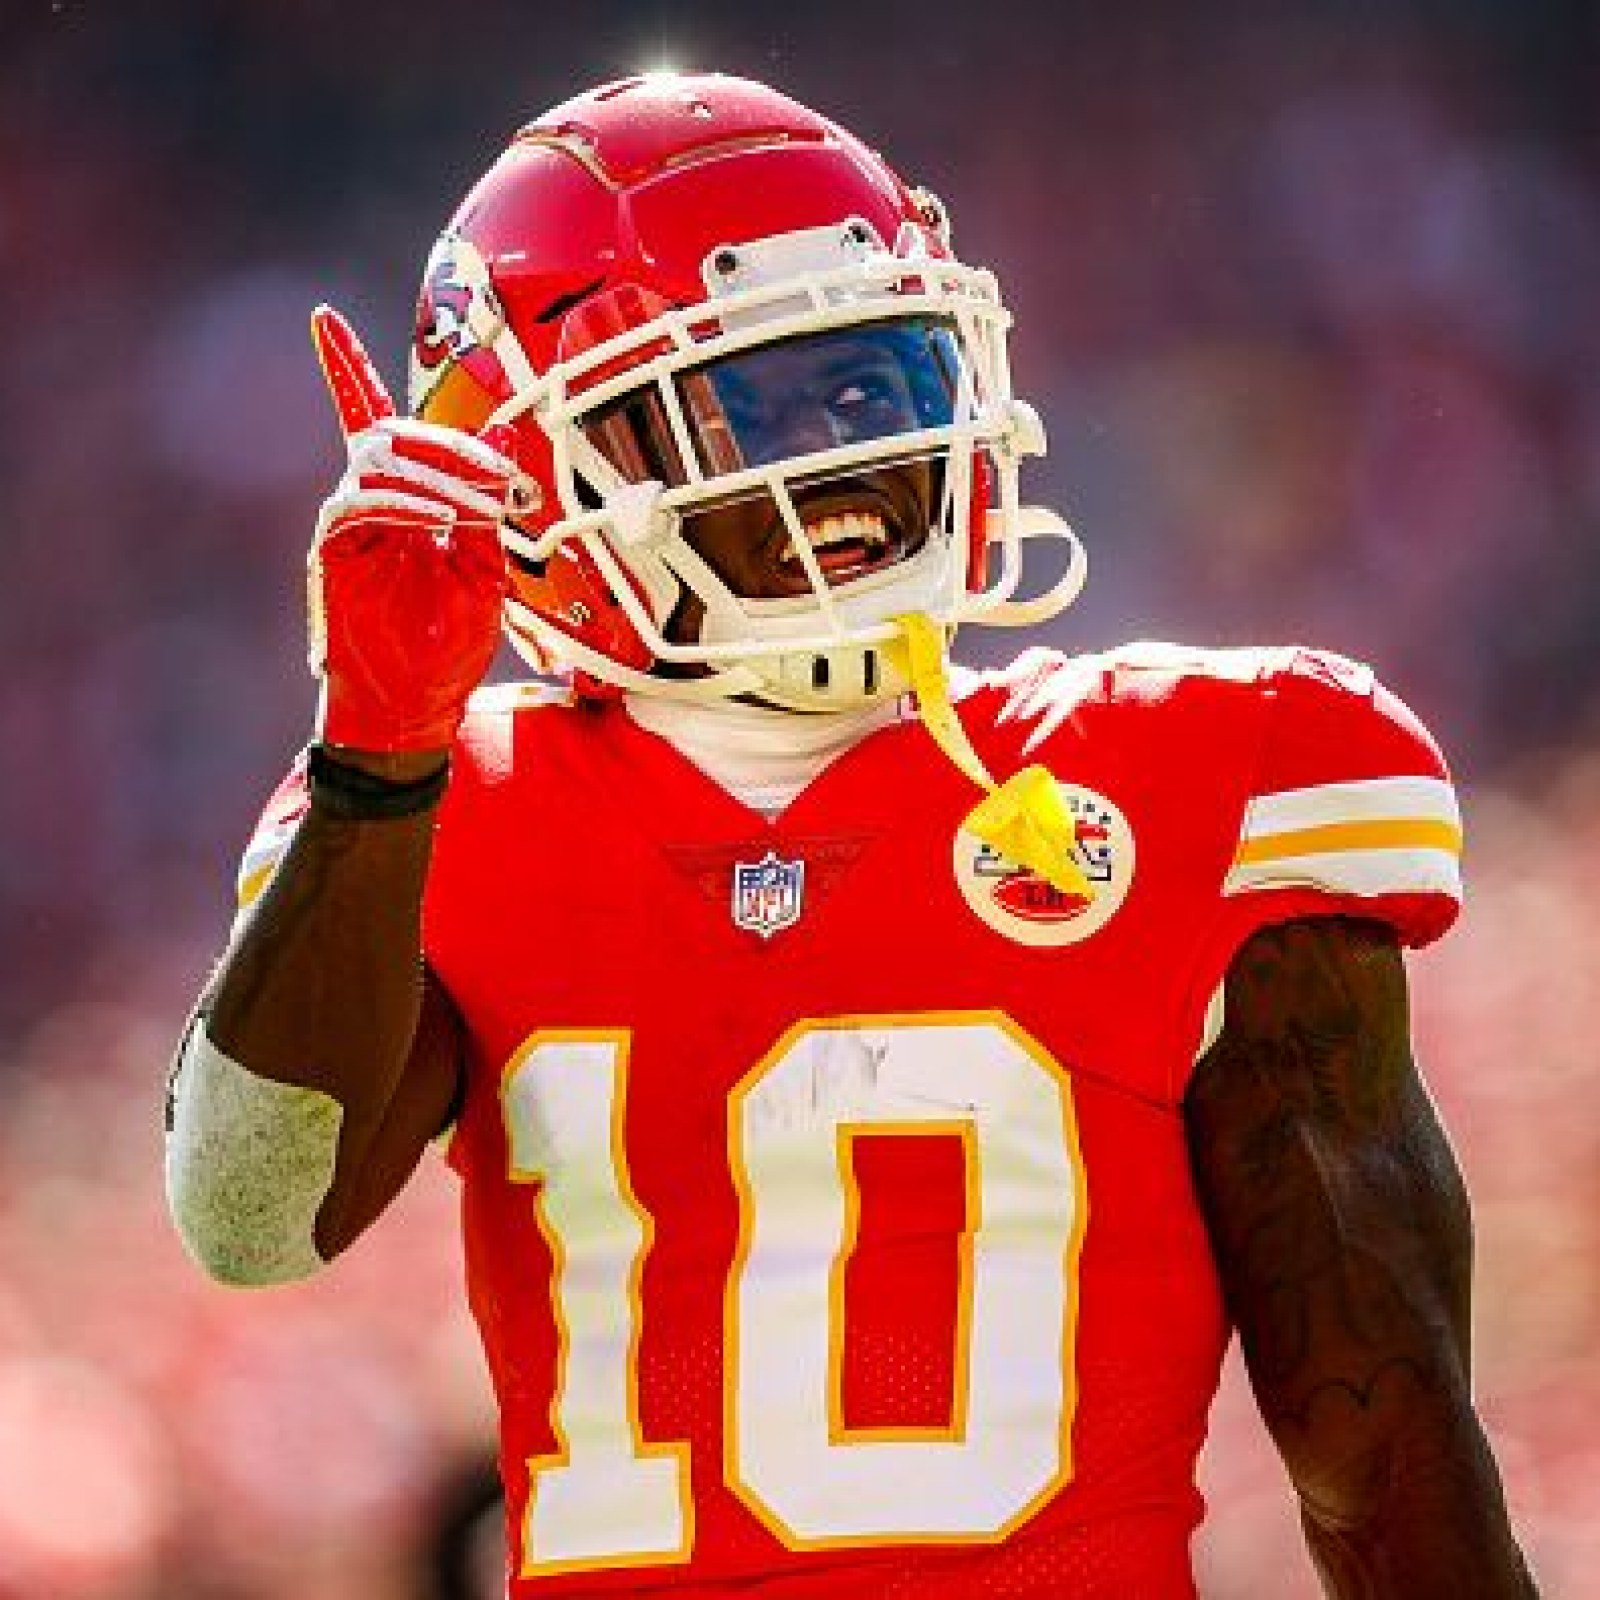 outlet store 0be96 2b280 NFL Week 15 Injury Updates: Tyreek Hill Questionable, Will ...